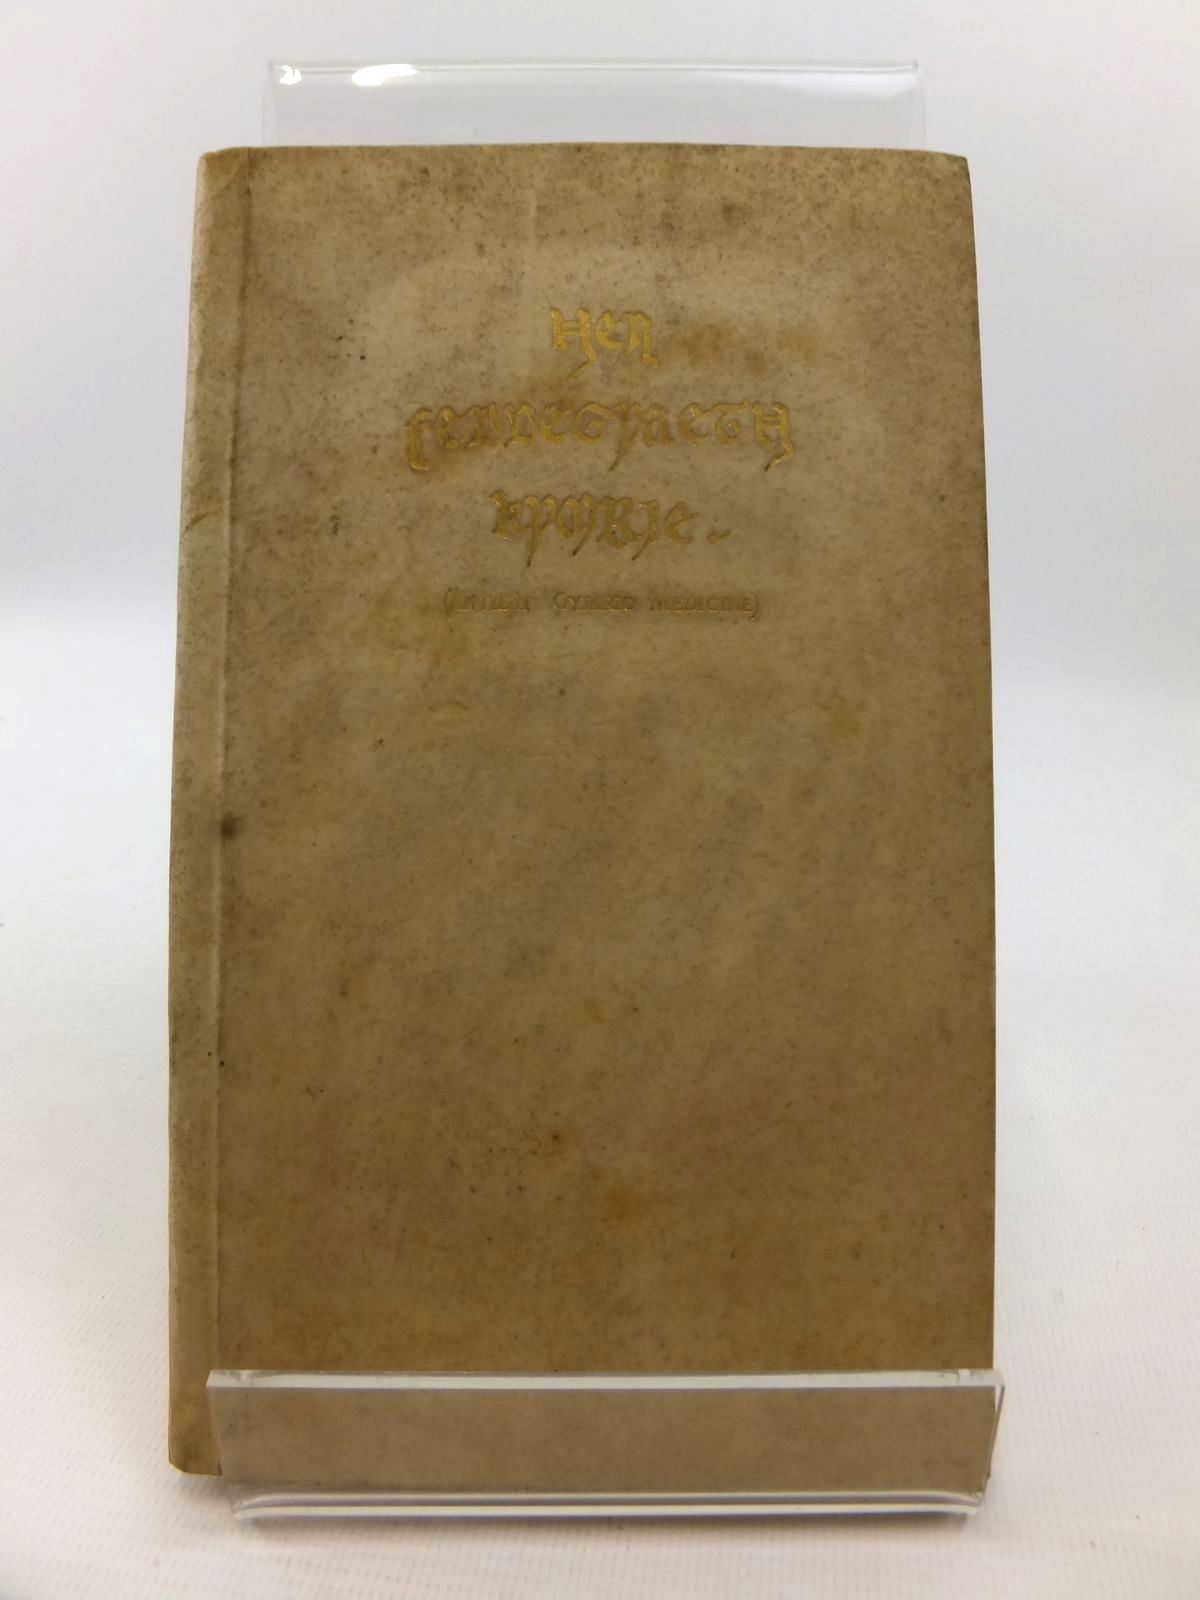 Photo of HEN FEDDEGYAETH KYMRIE (ANTIENT CYMRIC MEDICINE) written by Wellcome, Henry S. published by Burroughs Wellcome And Col. (STOCK CODE: 1812841)  for sale by Stella & Rose's Books